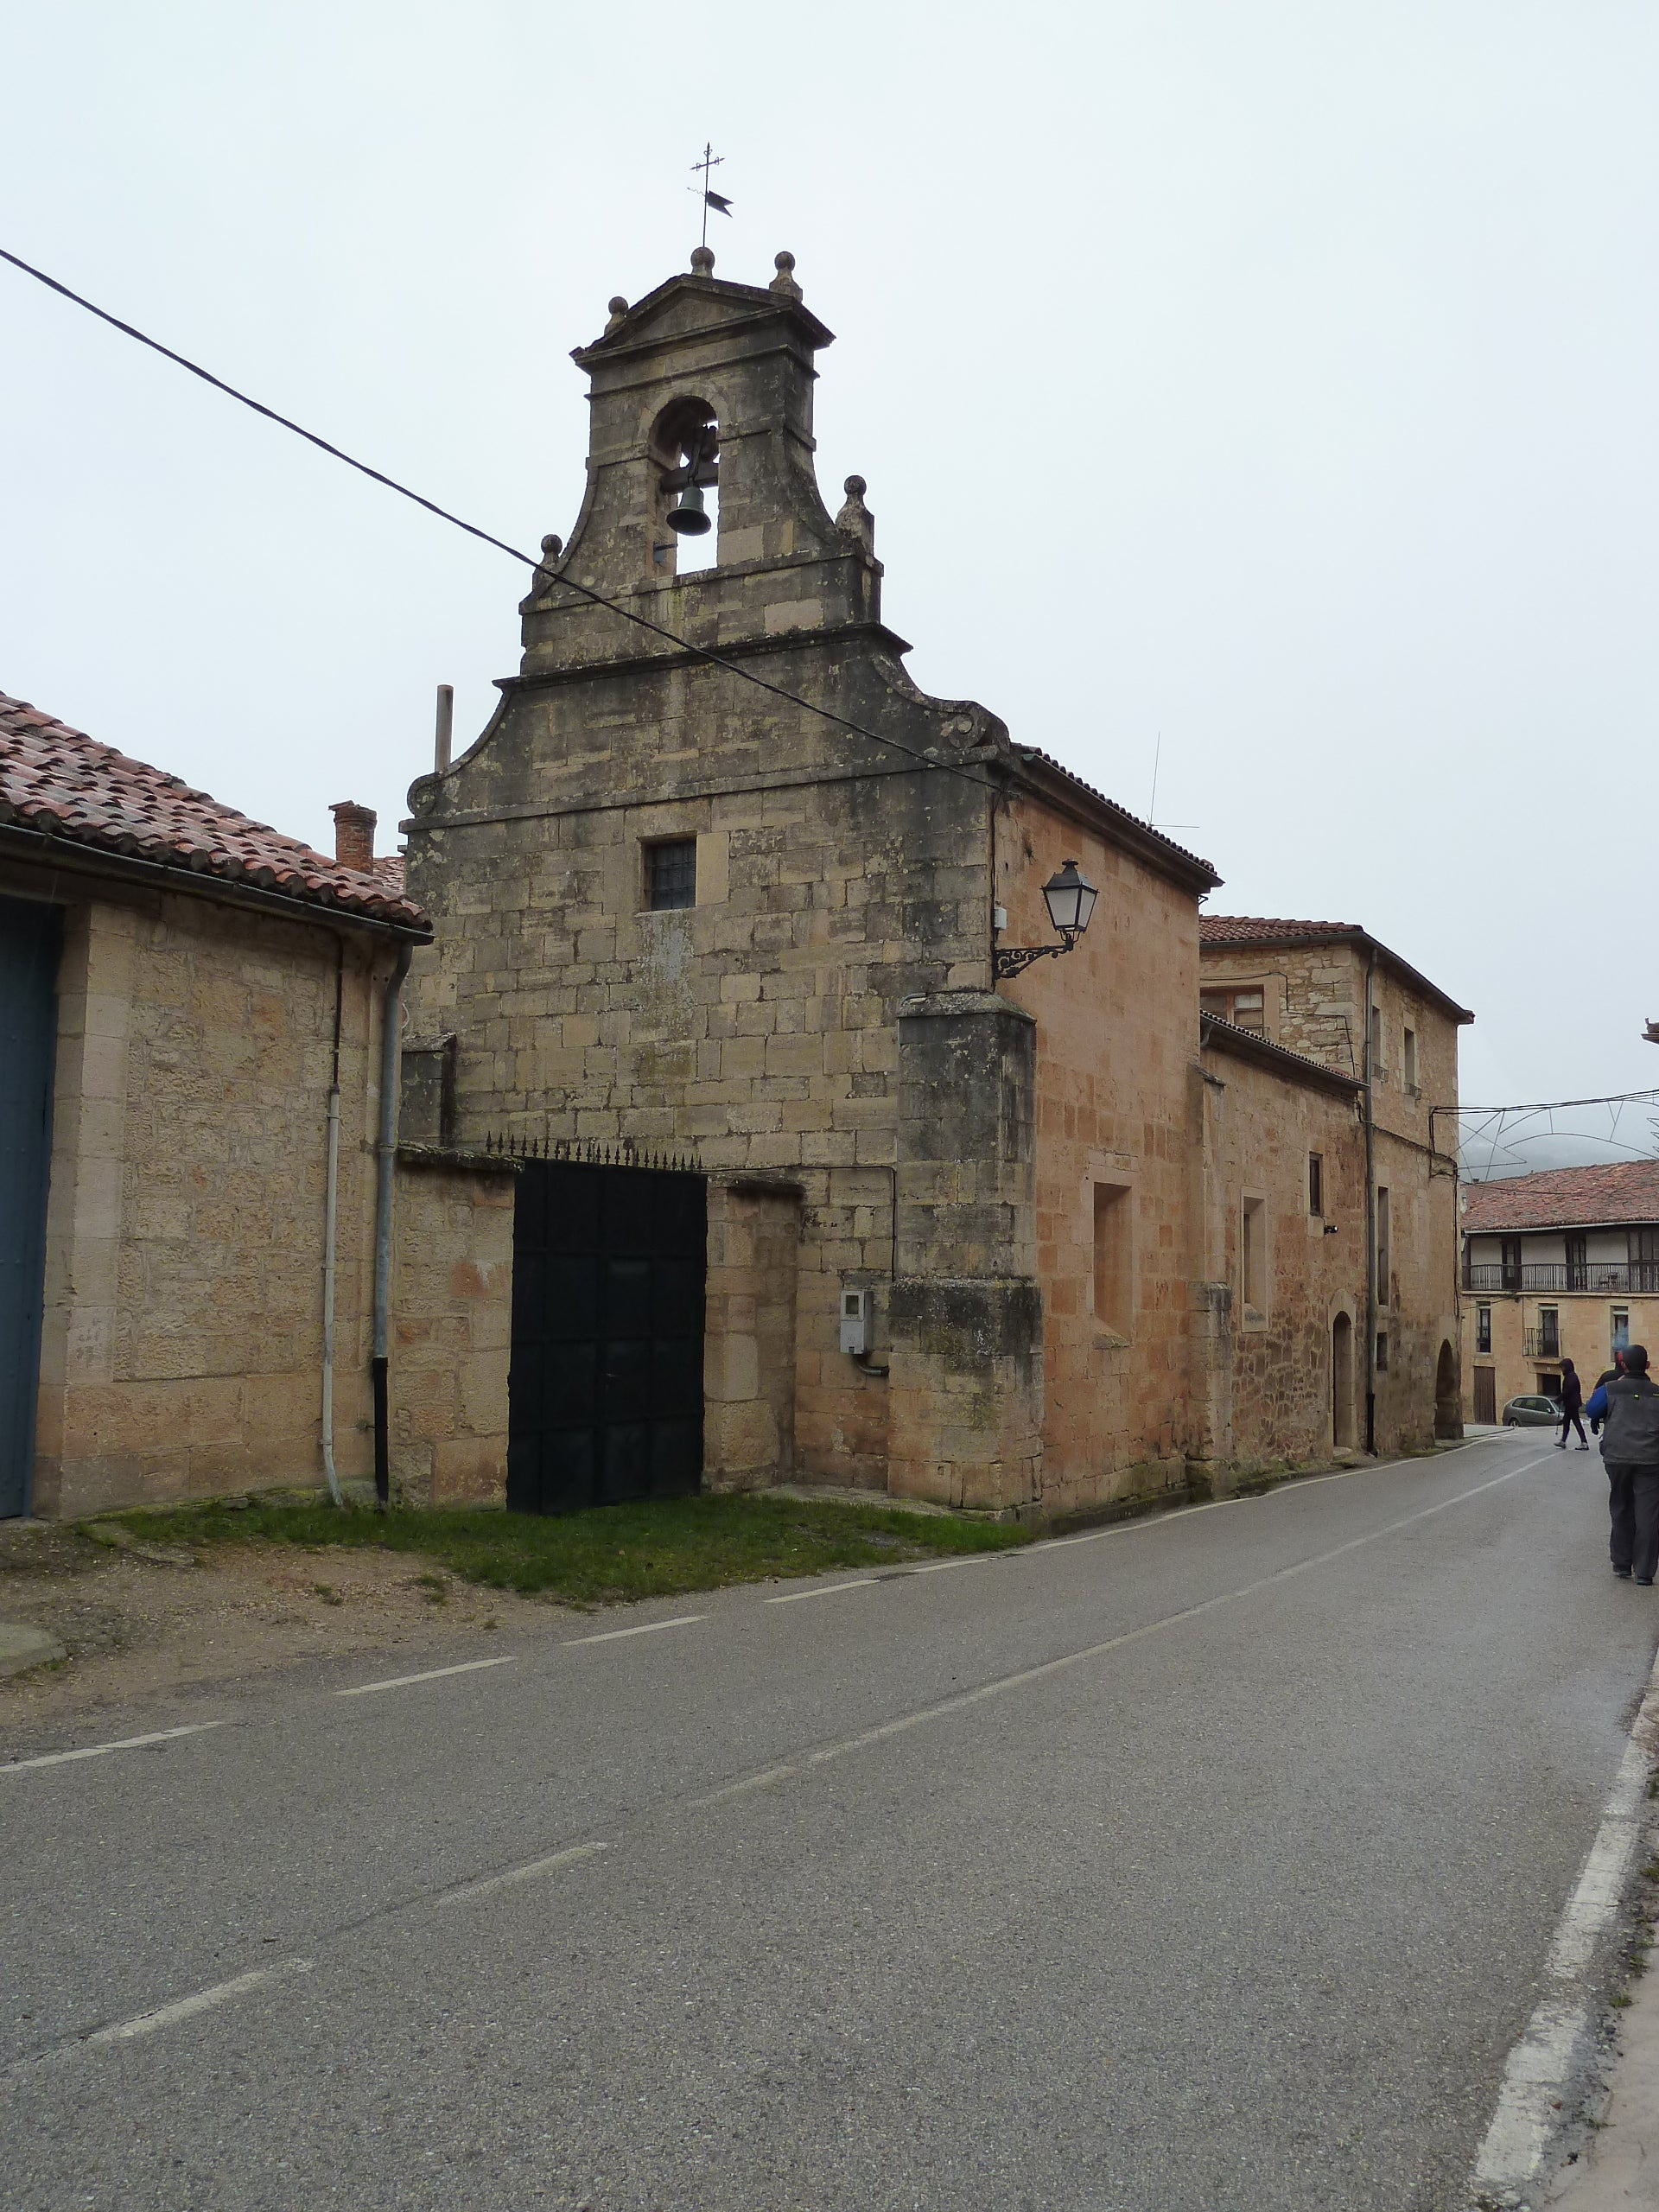 Church in Sedano